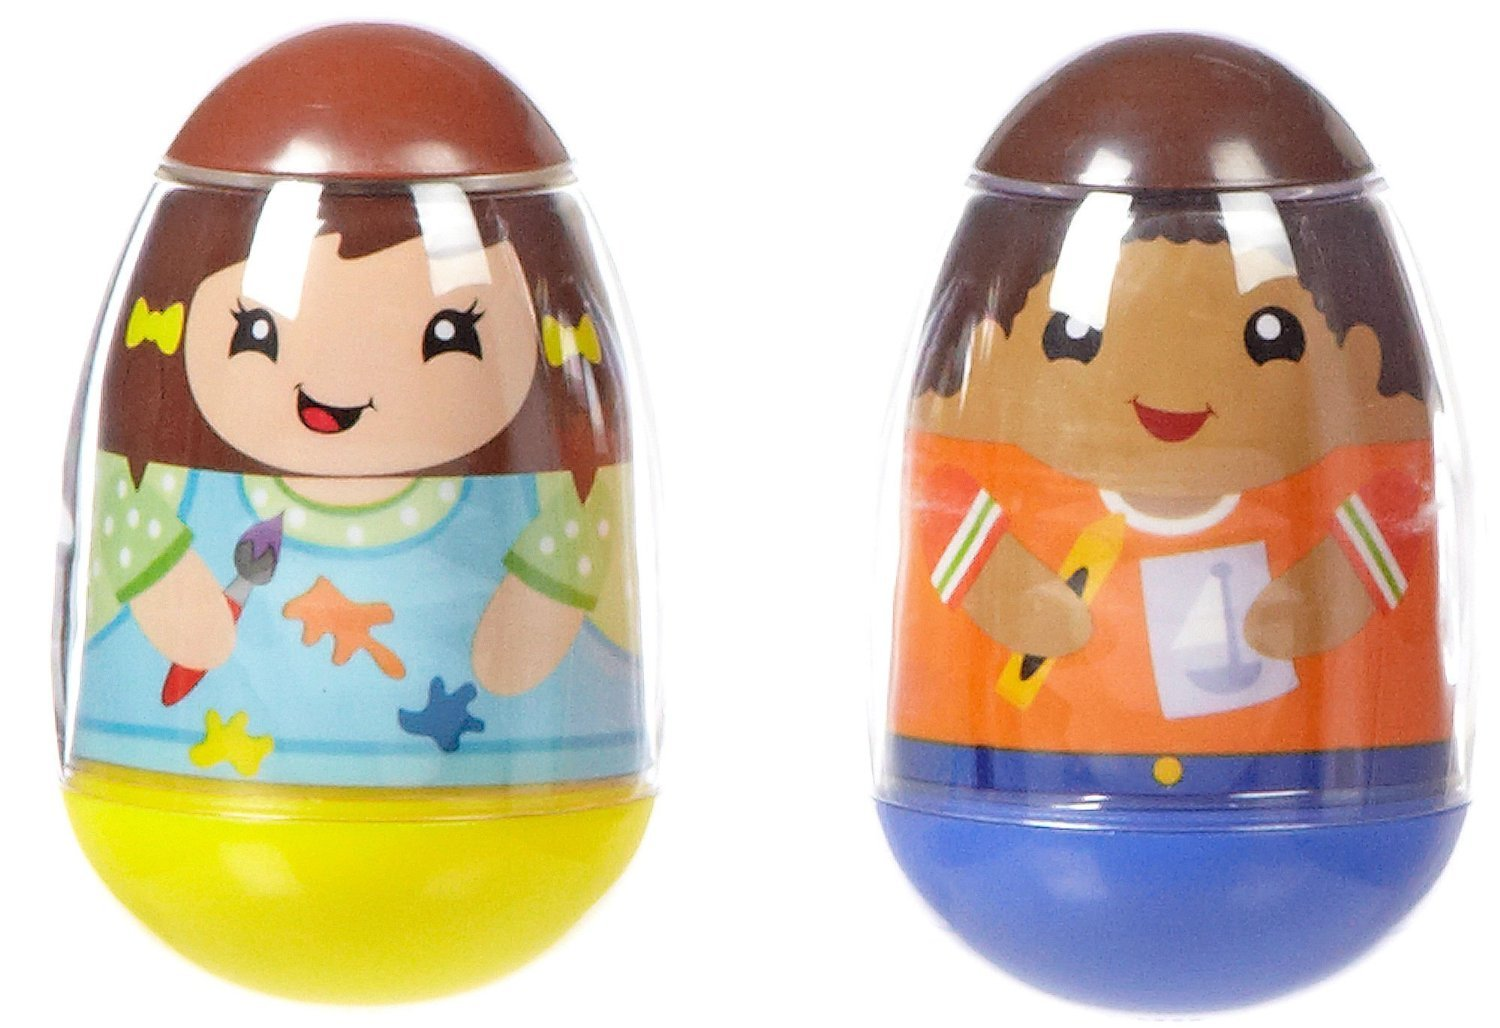 Playskool Weebles Musical Treehouse Part - 40: Amazon.com : Playskool Weebles Art 2 Pack - Boy U0026 Girl By Babyland : Baby  Building And Stacking Toys : Baby